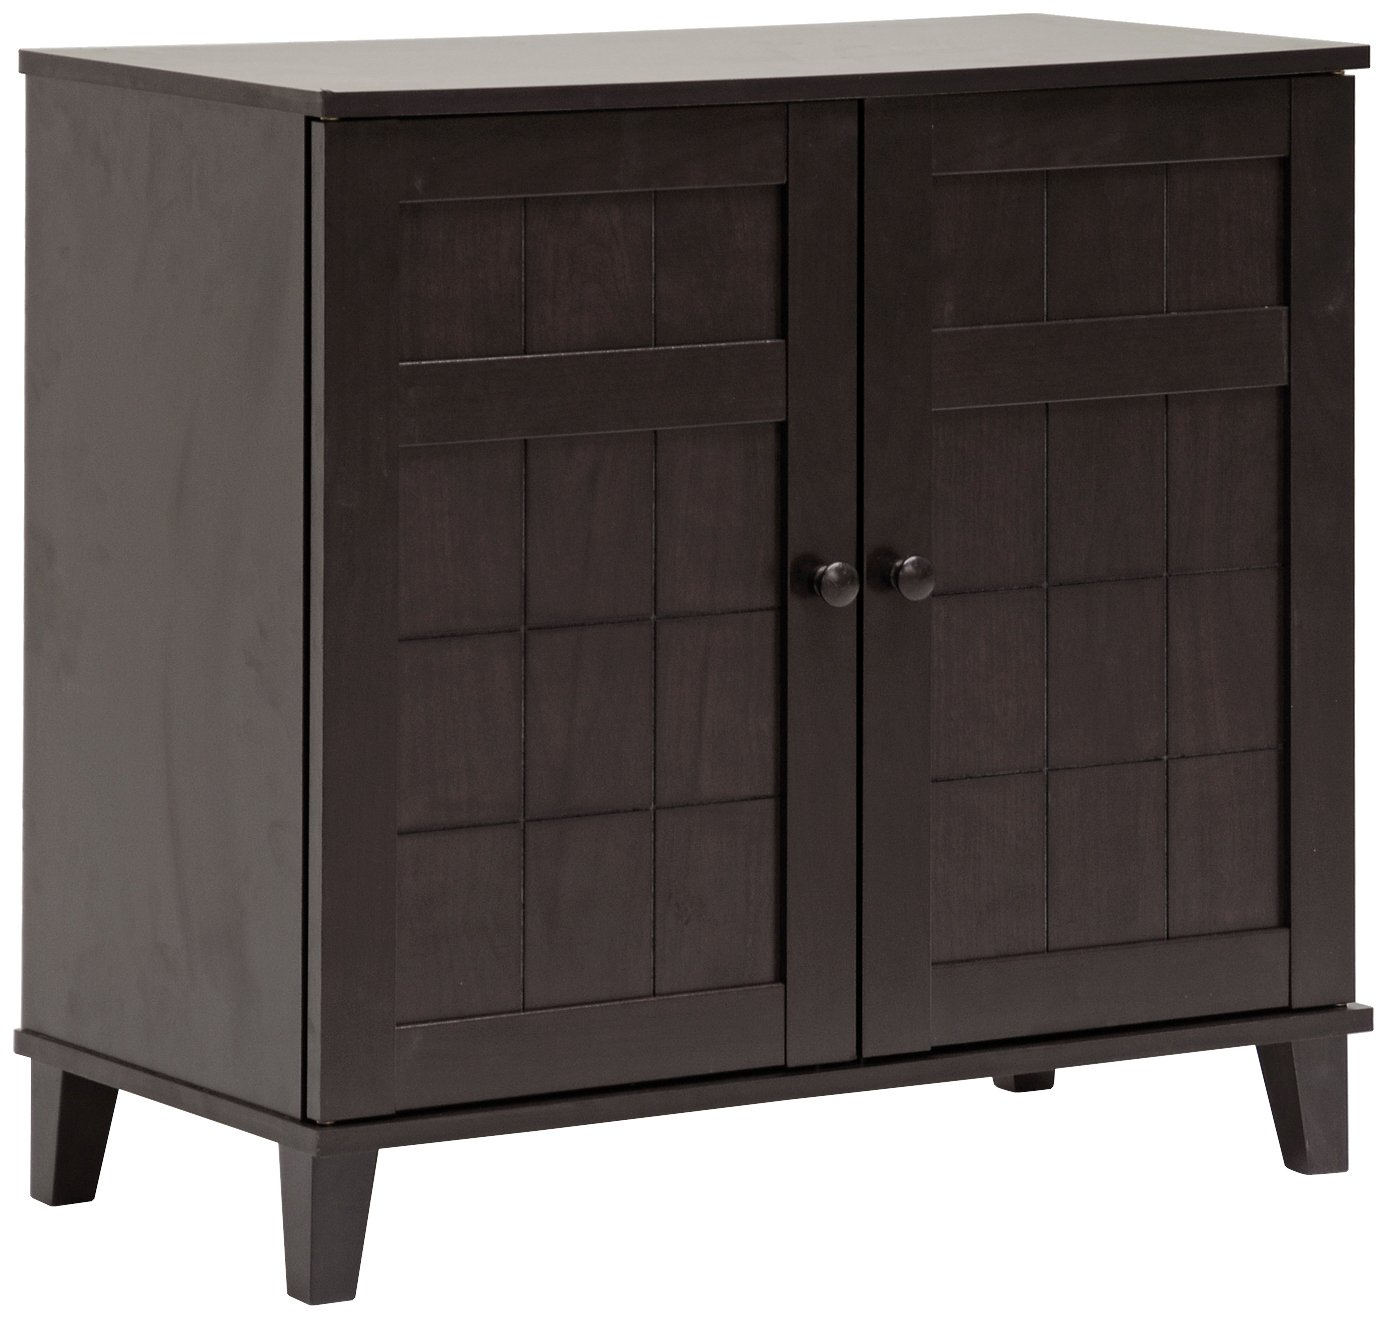 Amazon.com Baxton Studio Glidden Wood Modern Shoe Cabinet Short Dark Brown Kitchen u0026 Dining  sc 1 st  Amazon.com : contemporary shoe storage cabinet black  - Aquiesqueretaro.Com